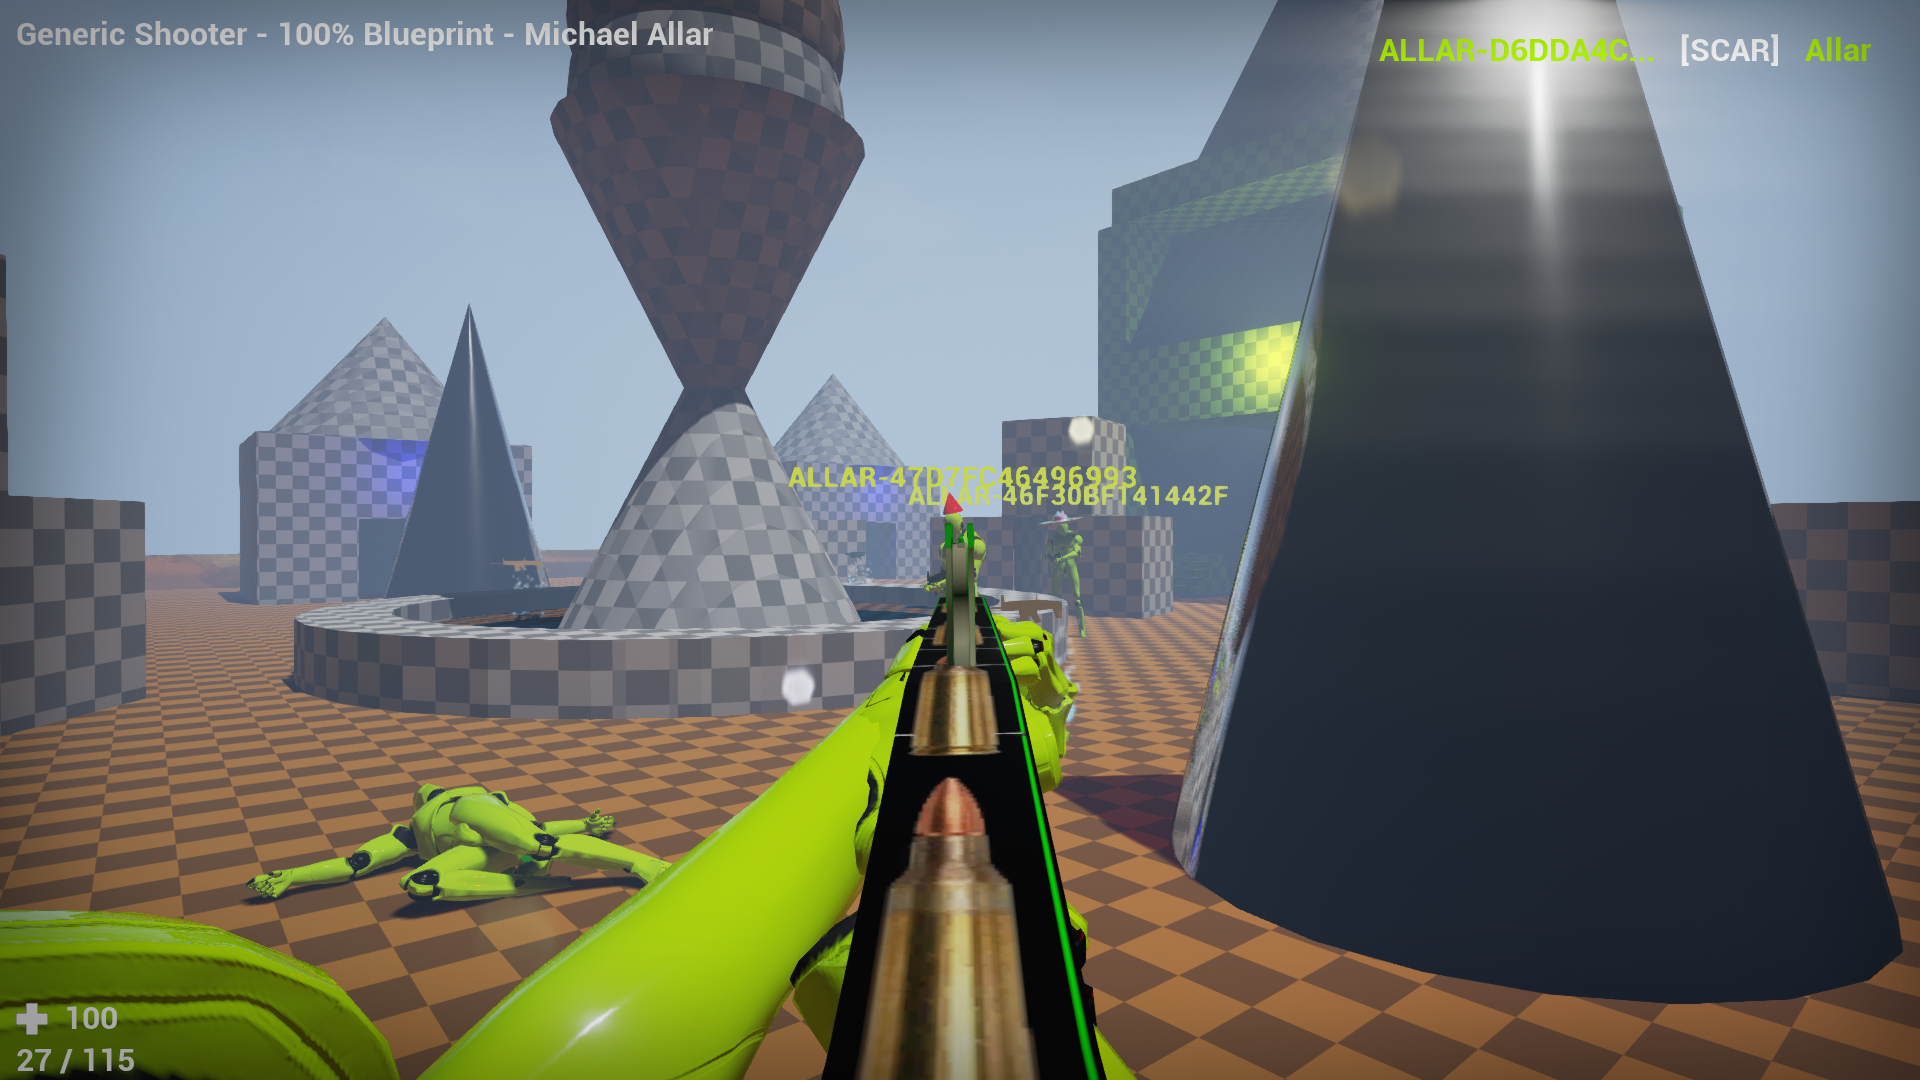 Generic Shooter Sample Project for Unreal Engine 4 by Gamemakin LLC